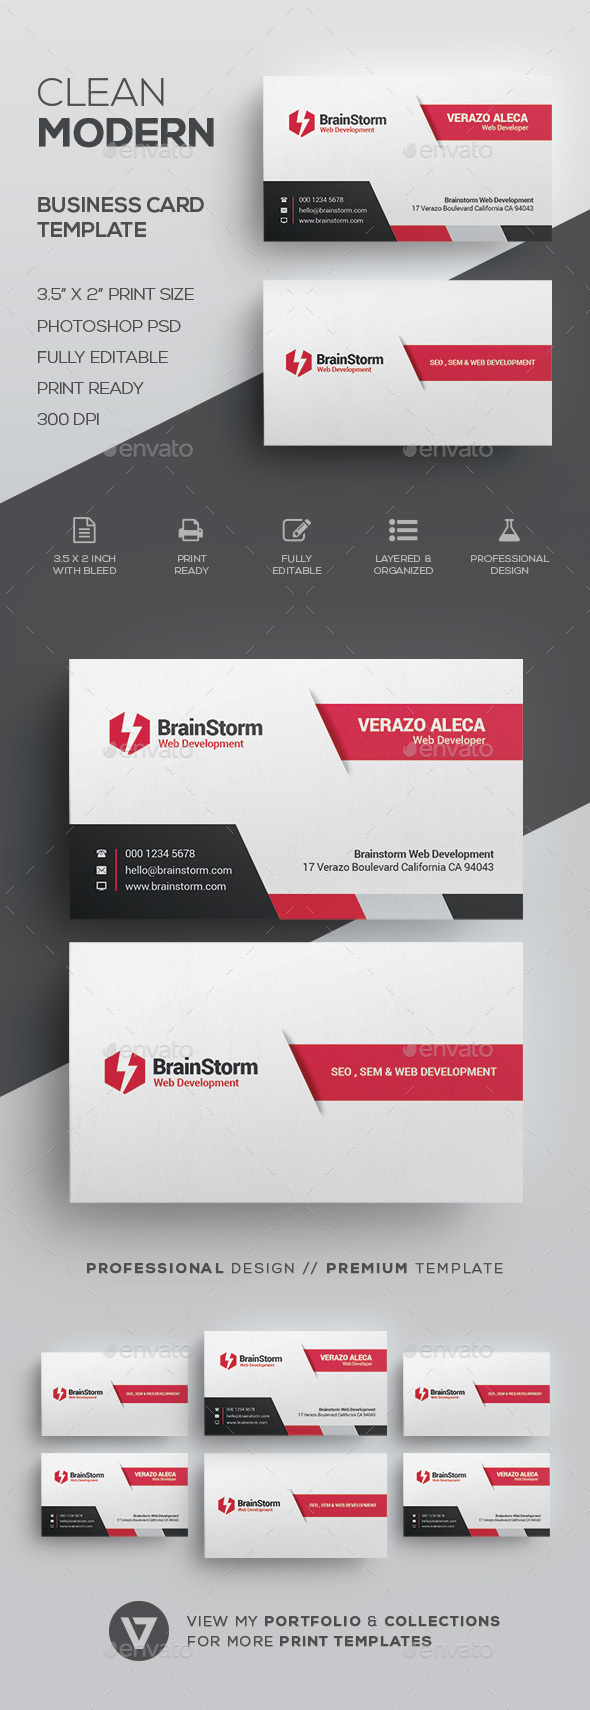 Clean Business Card Template by verazo | GraphicRiver